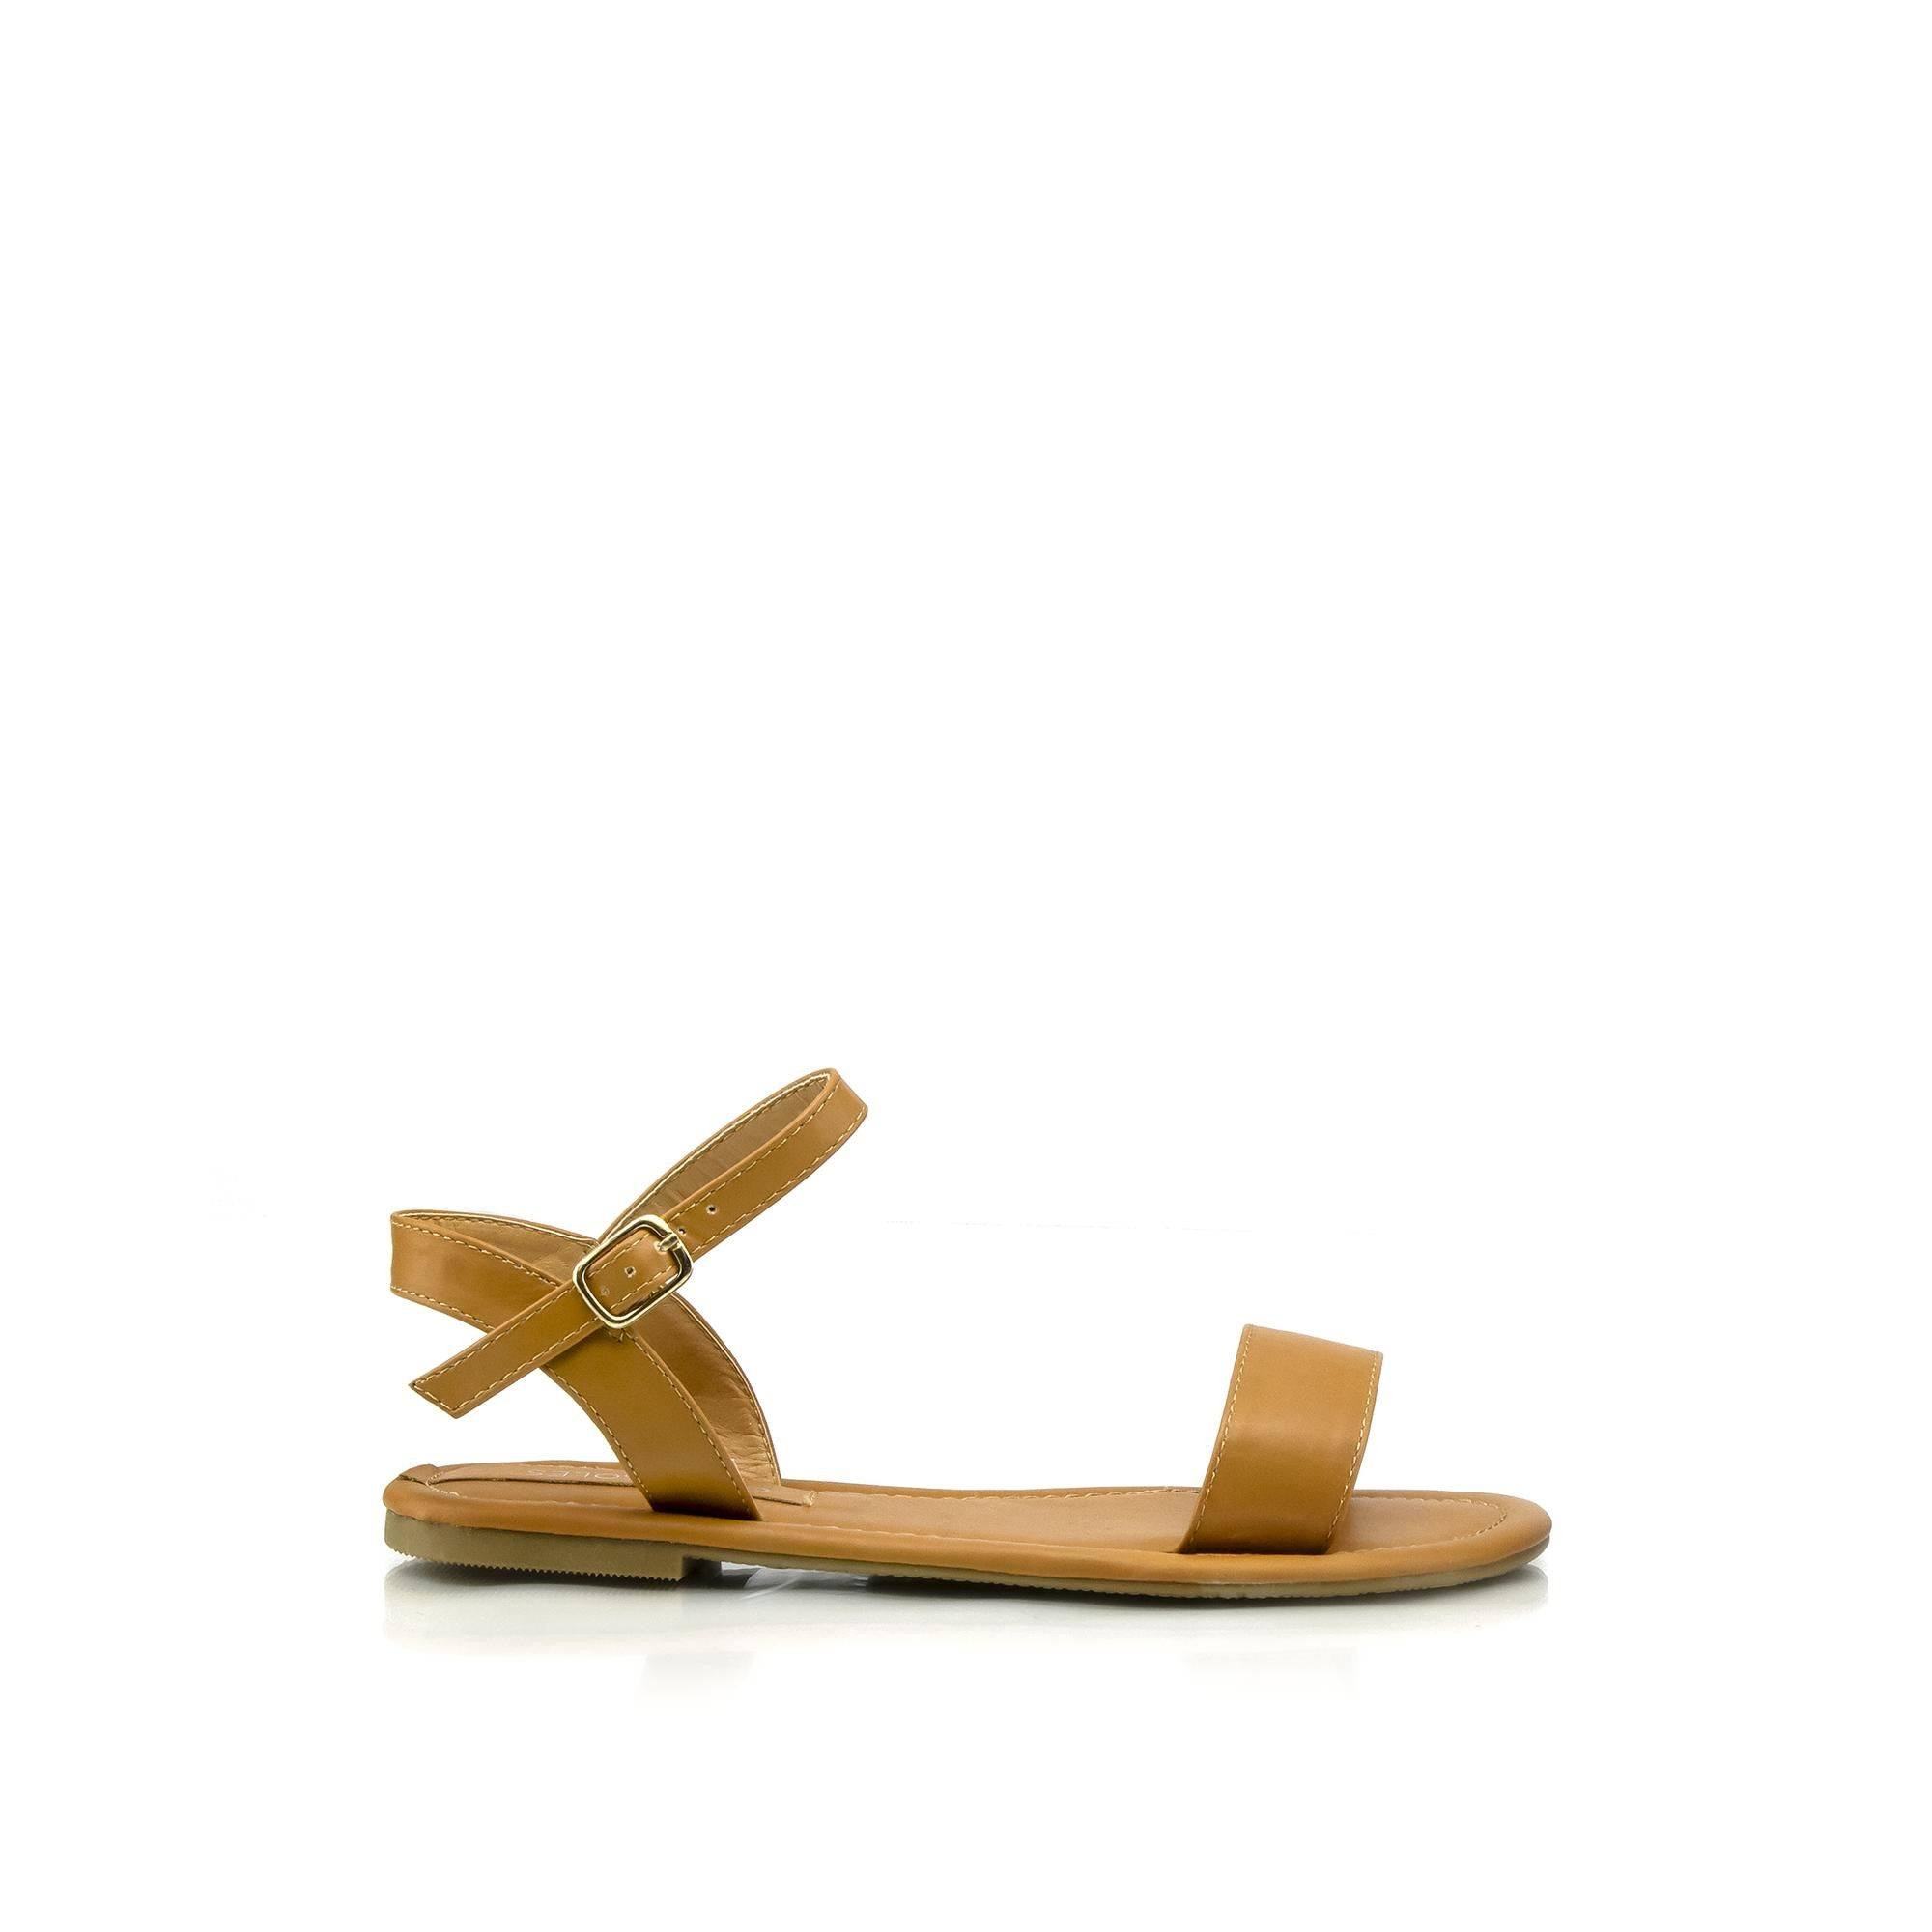 BANKS Faux Leather Sandals